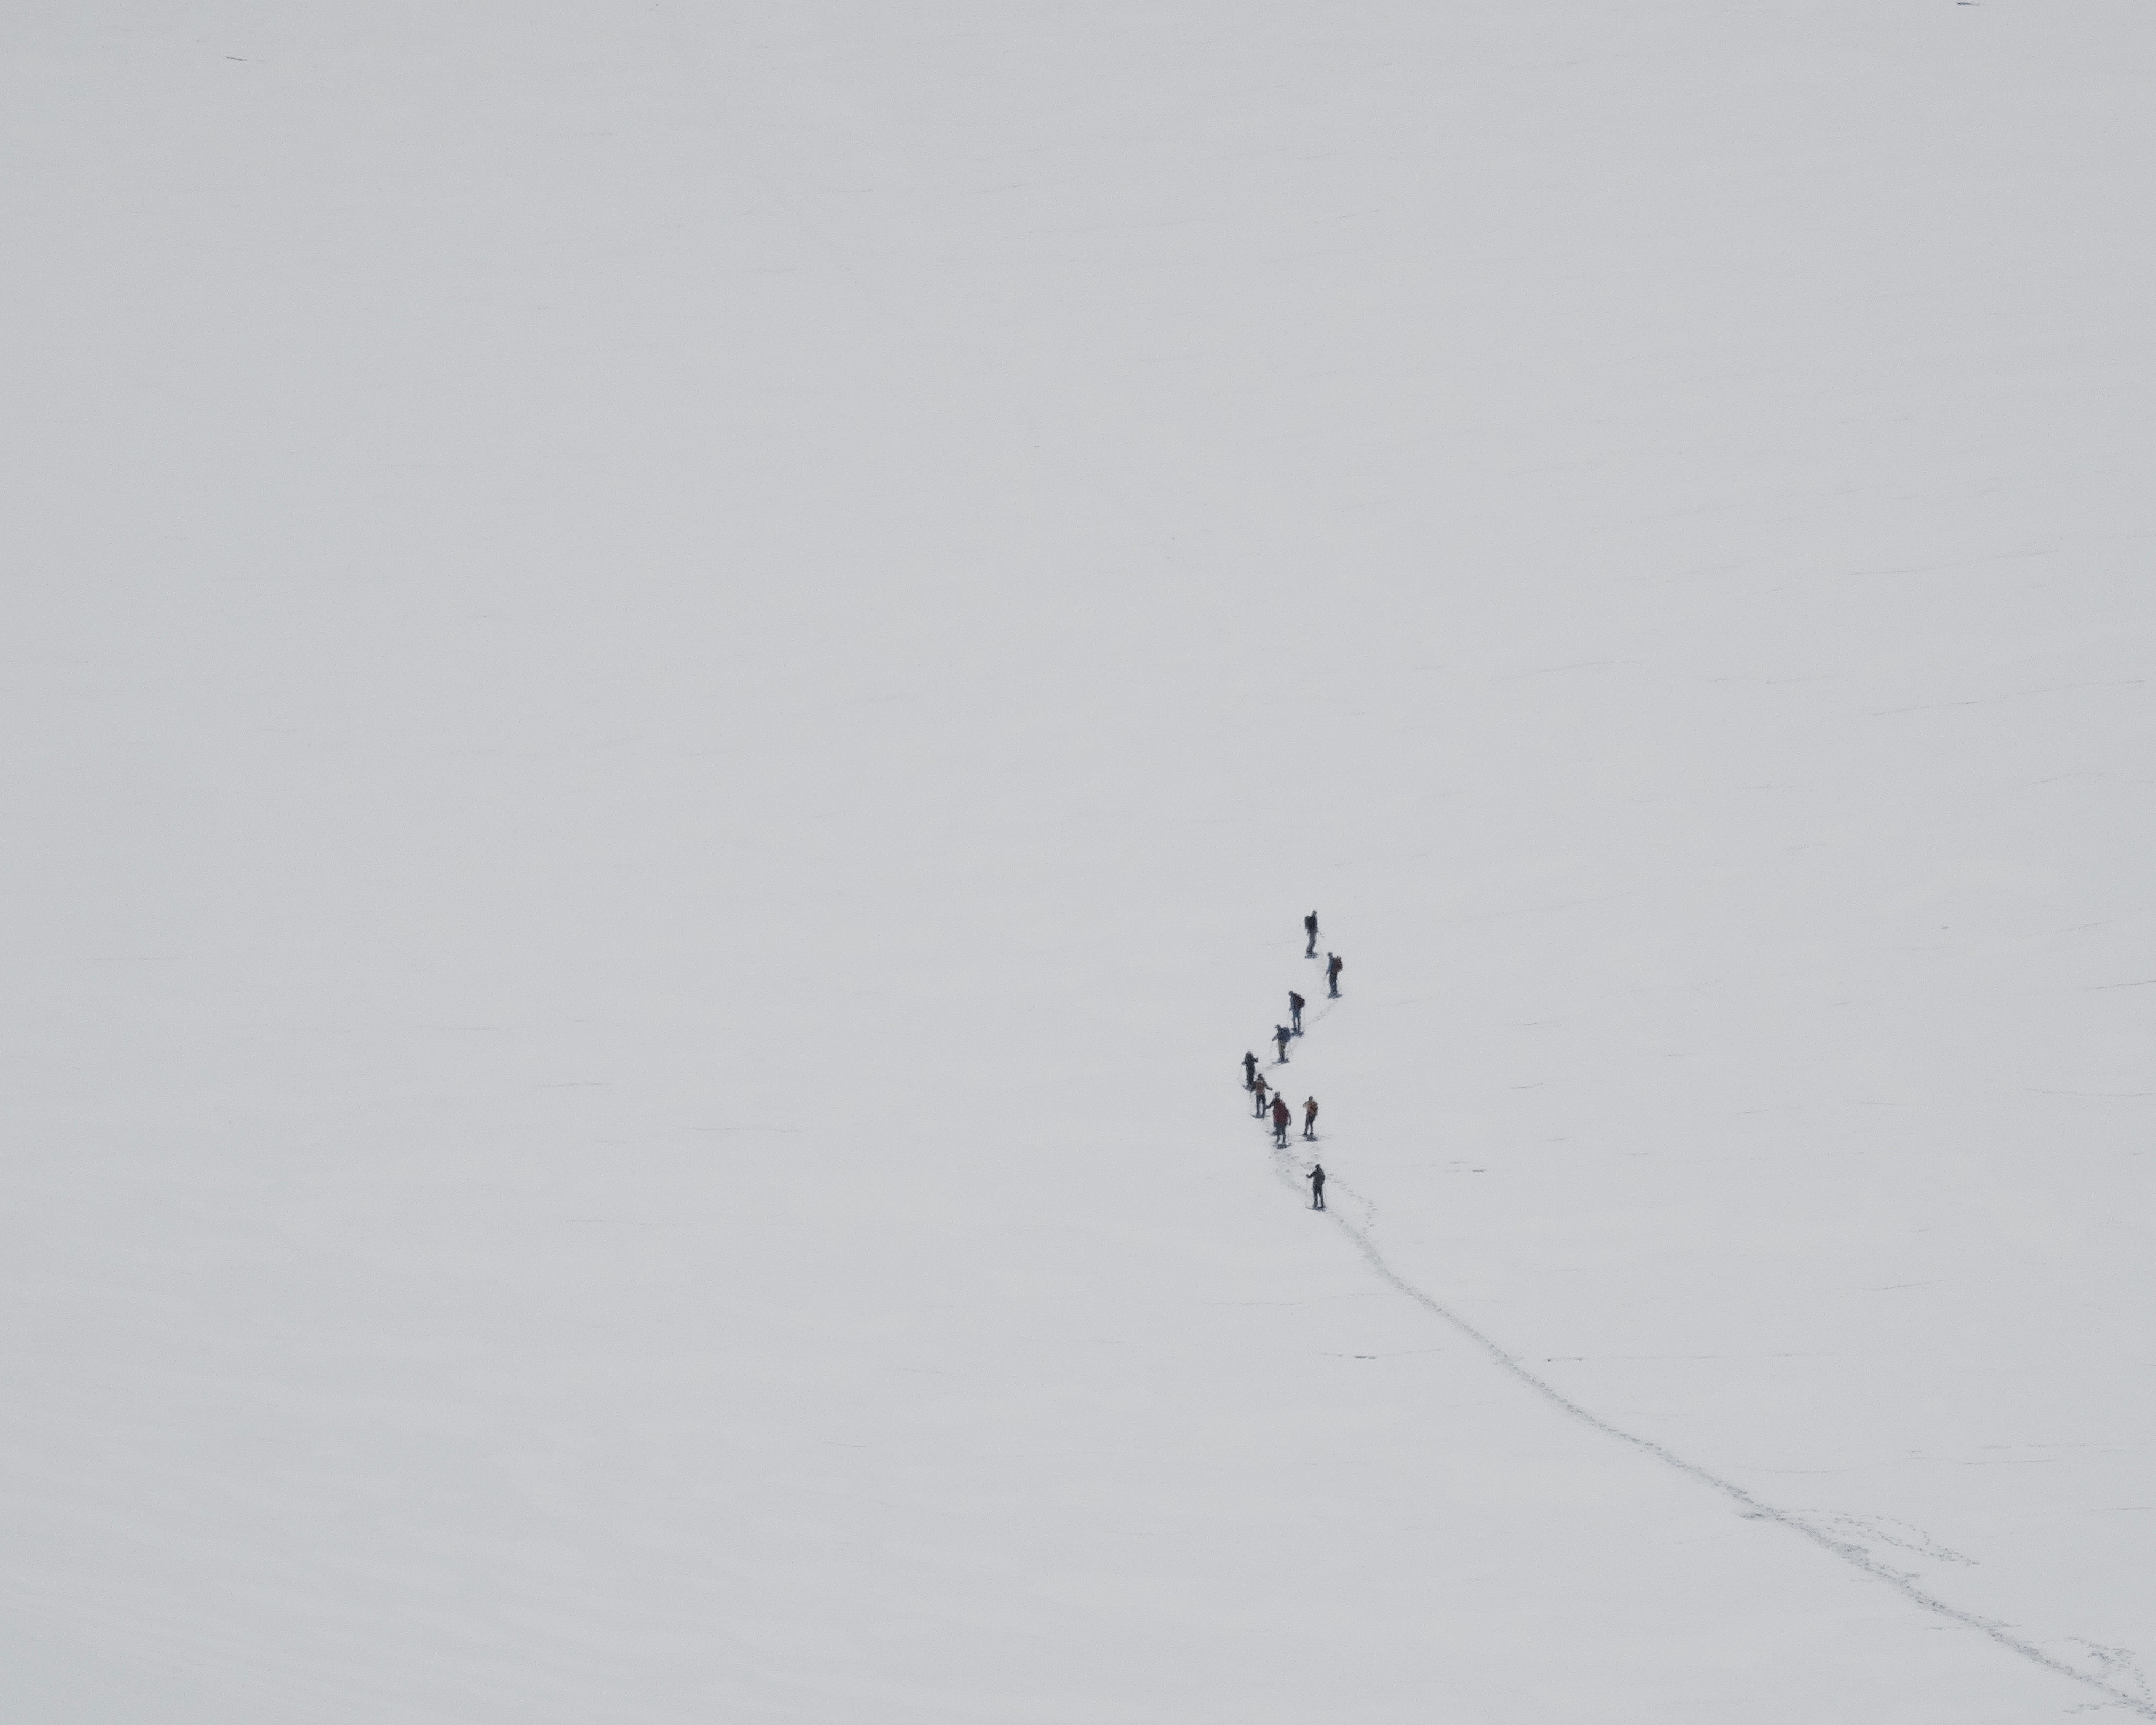 group of people walking on snow during daytime